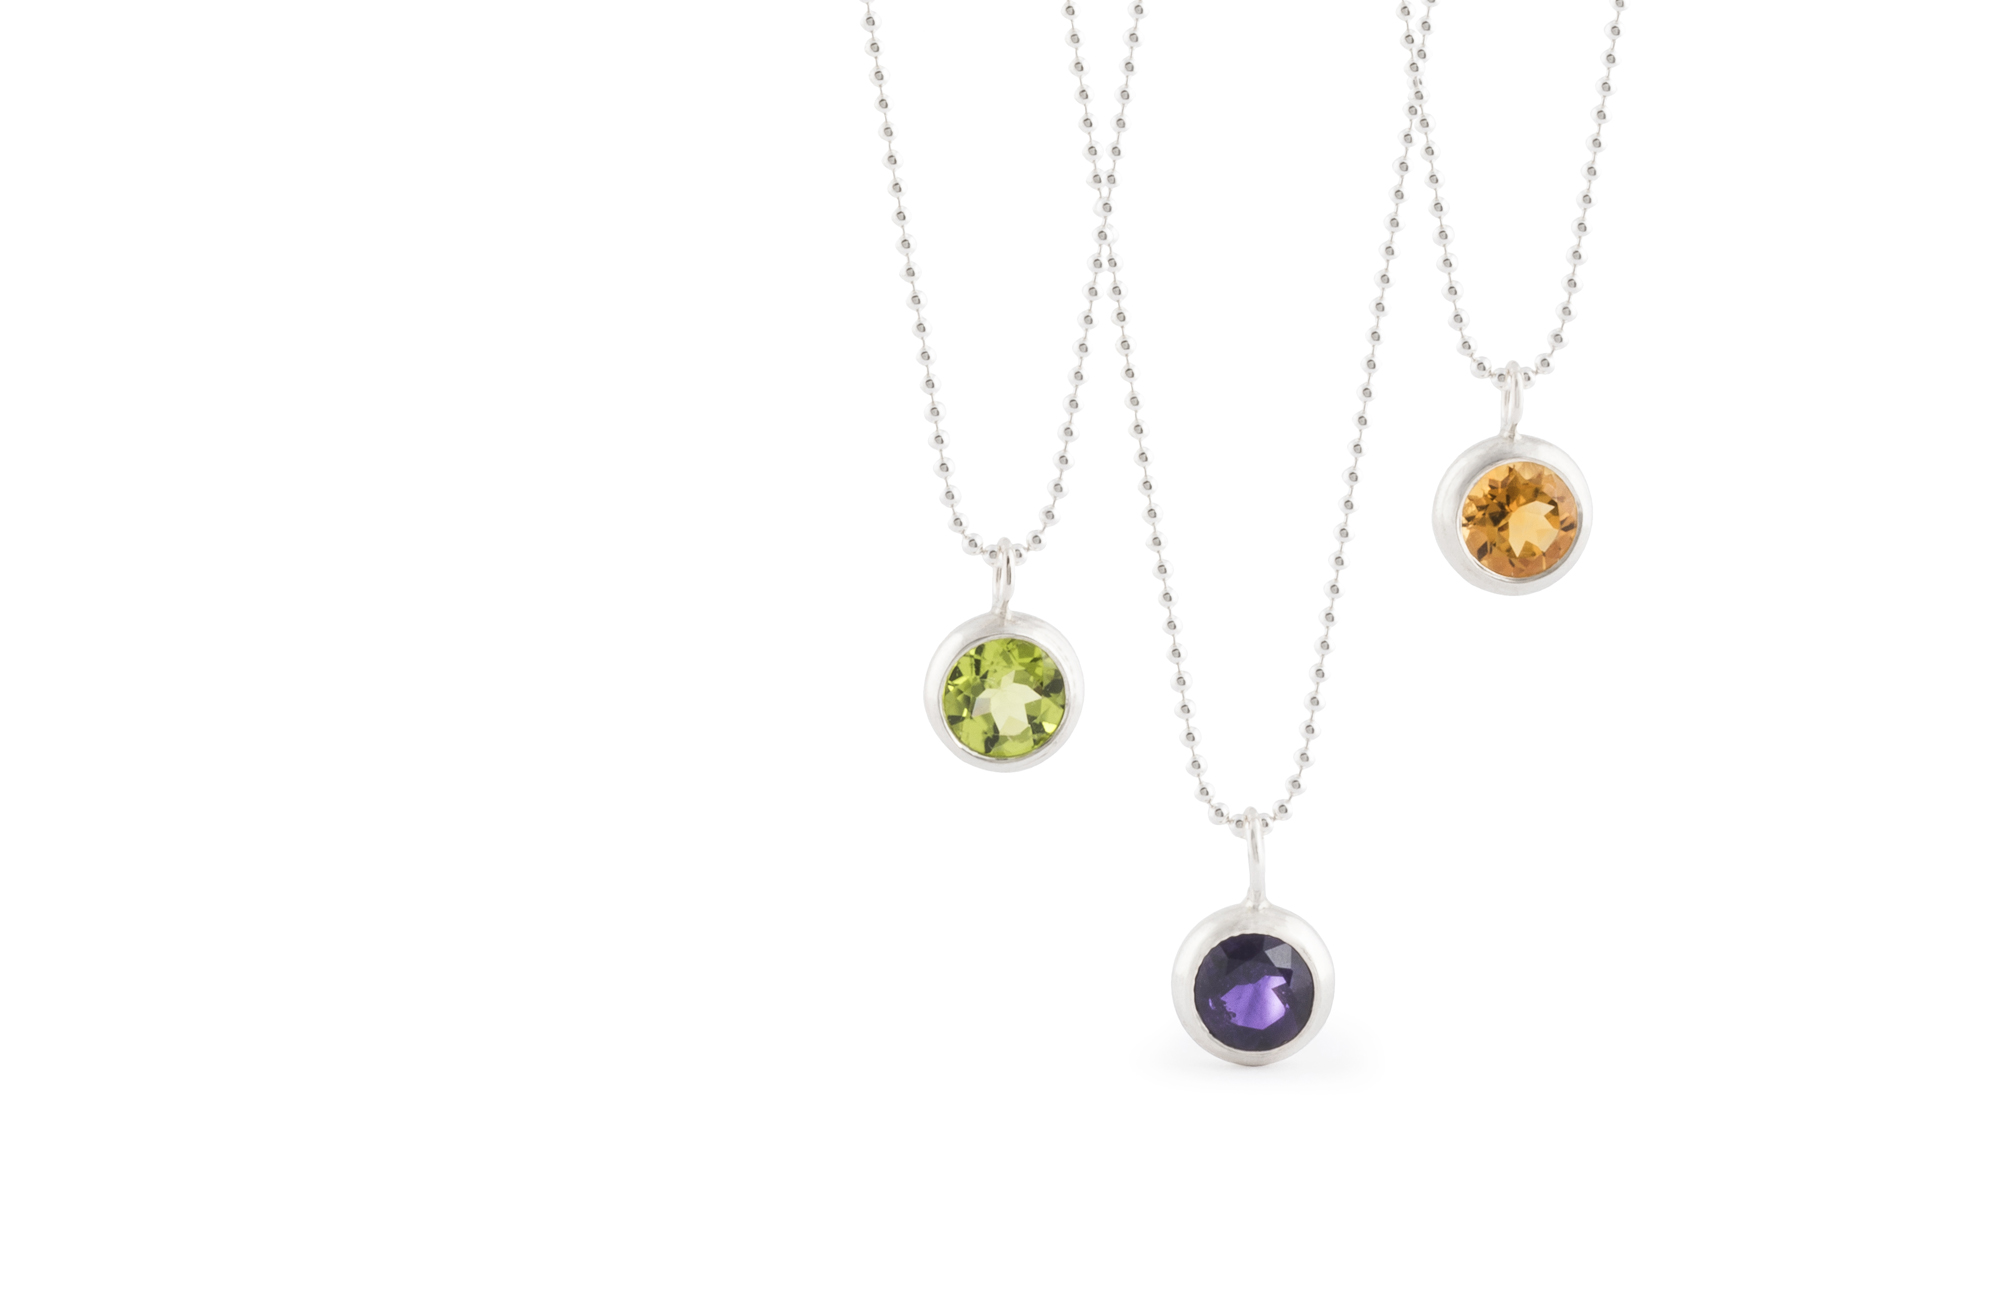 Necklace BUBBLES from the collection DELHI, in sterling silver polished, with peridot, amethyst and citrine